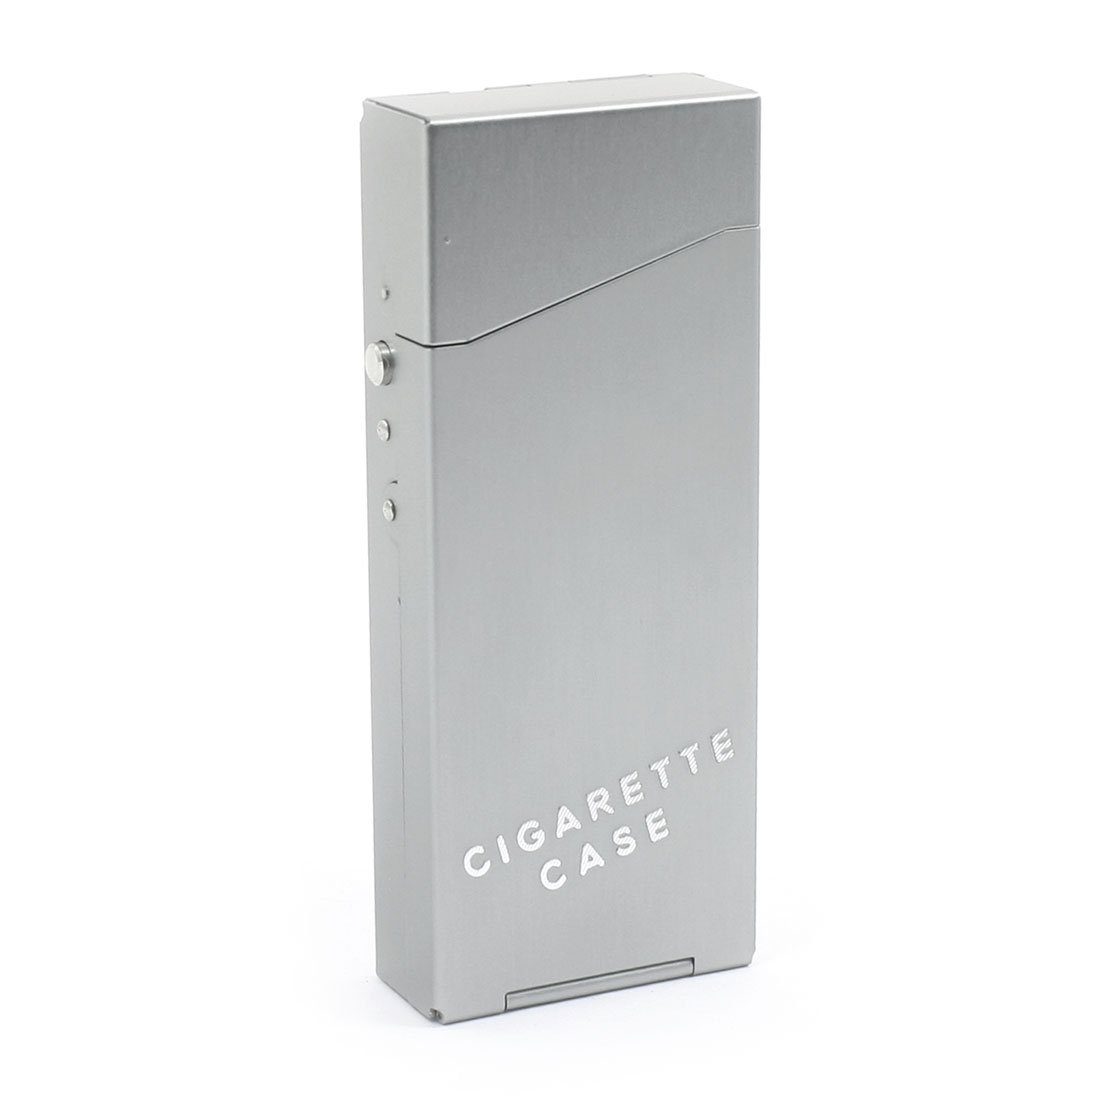 Gray Metal Rectangular 10.8cm x 4.3cm x 1.8cm Spring Loaded Flip Open Hinge Case Box Container Holder for 20pcs Cigarettes